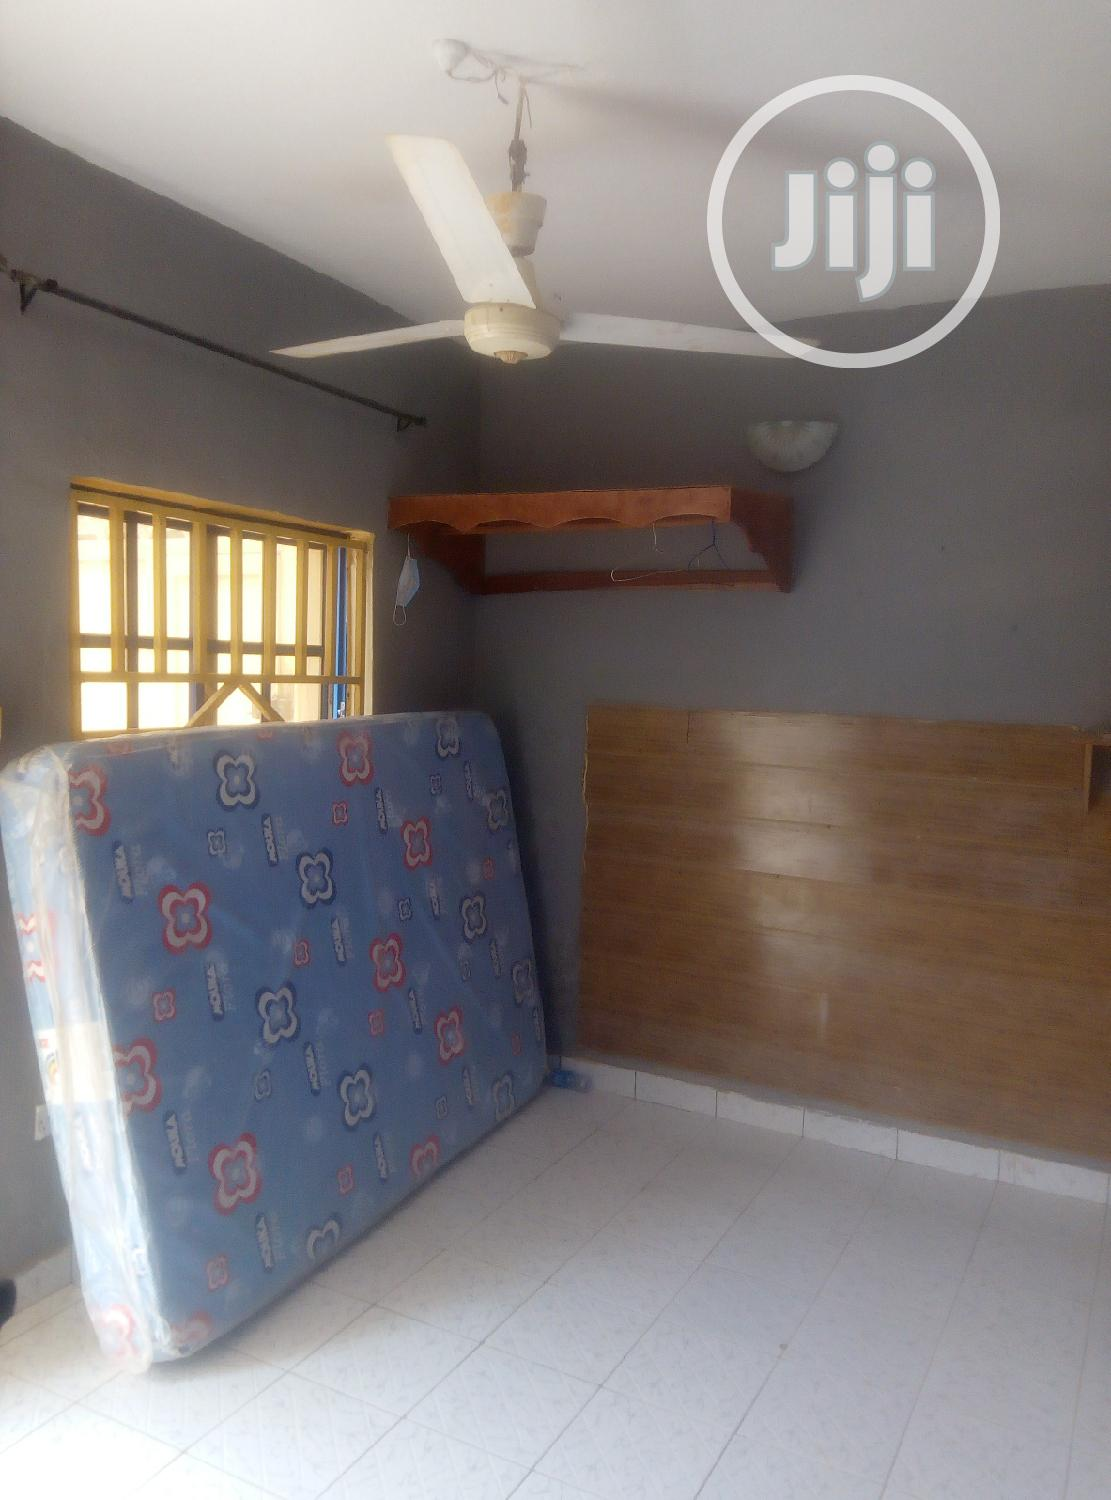 Archive: Clean Selfcontain Behind Eco Sch for Rent for Female Alone